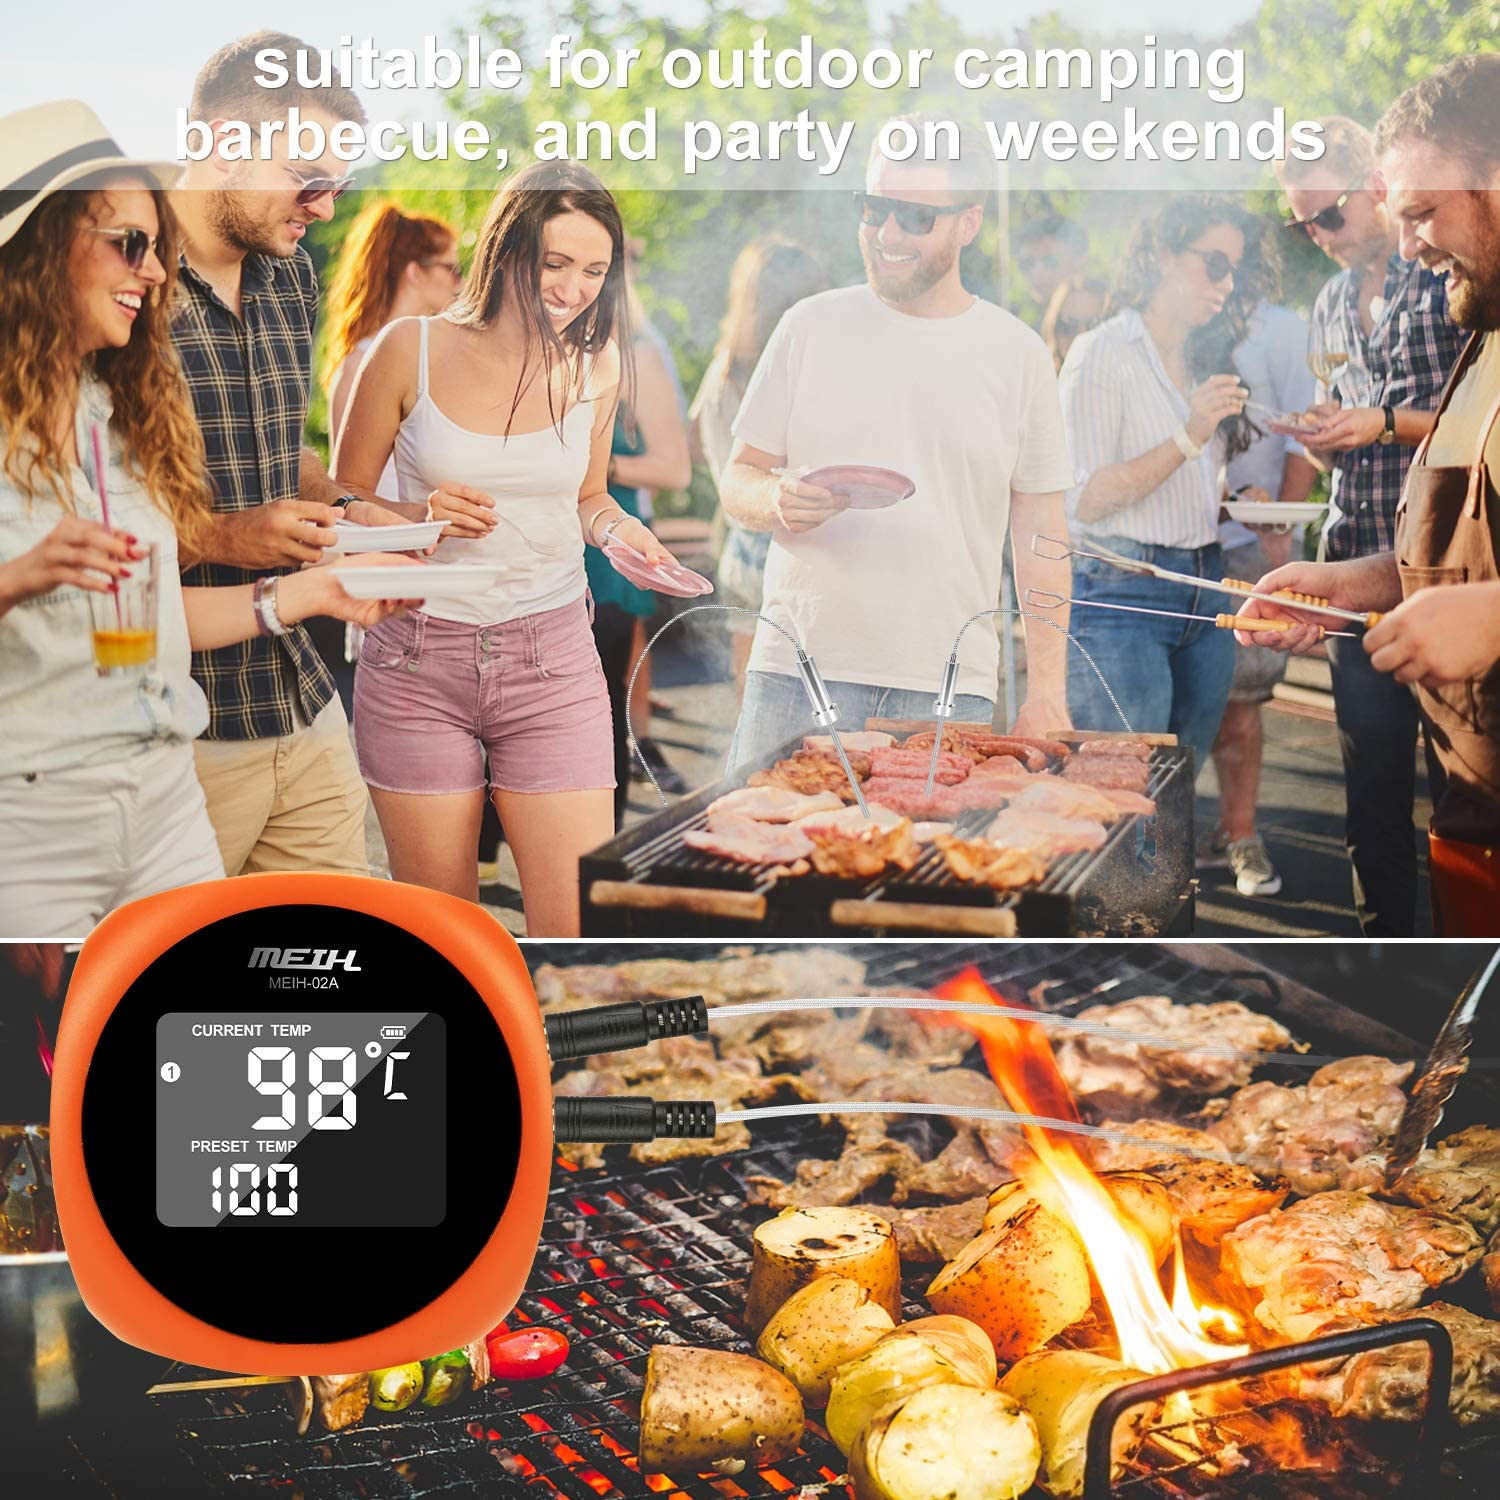 BBQ ESPER Wireless Meat Thermometer for Grilling Digital Grill Thermometer with 2 Probes Alarm Monitor BBQ Cooking Thermometer for Smoker Orange Timer Oven Kitchen-Waterproof